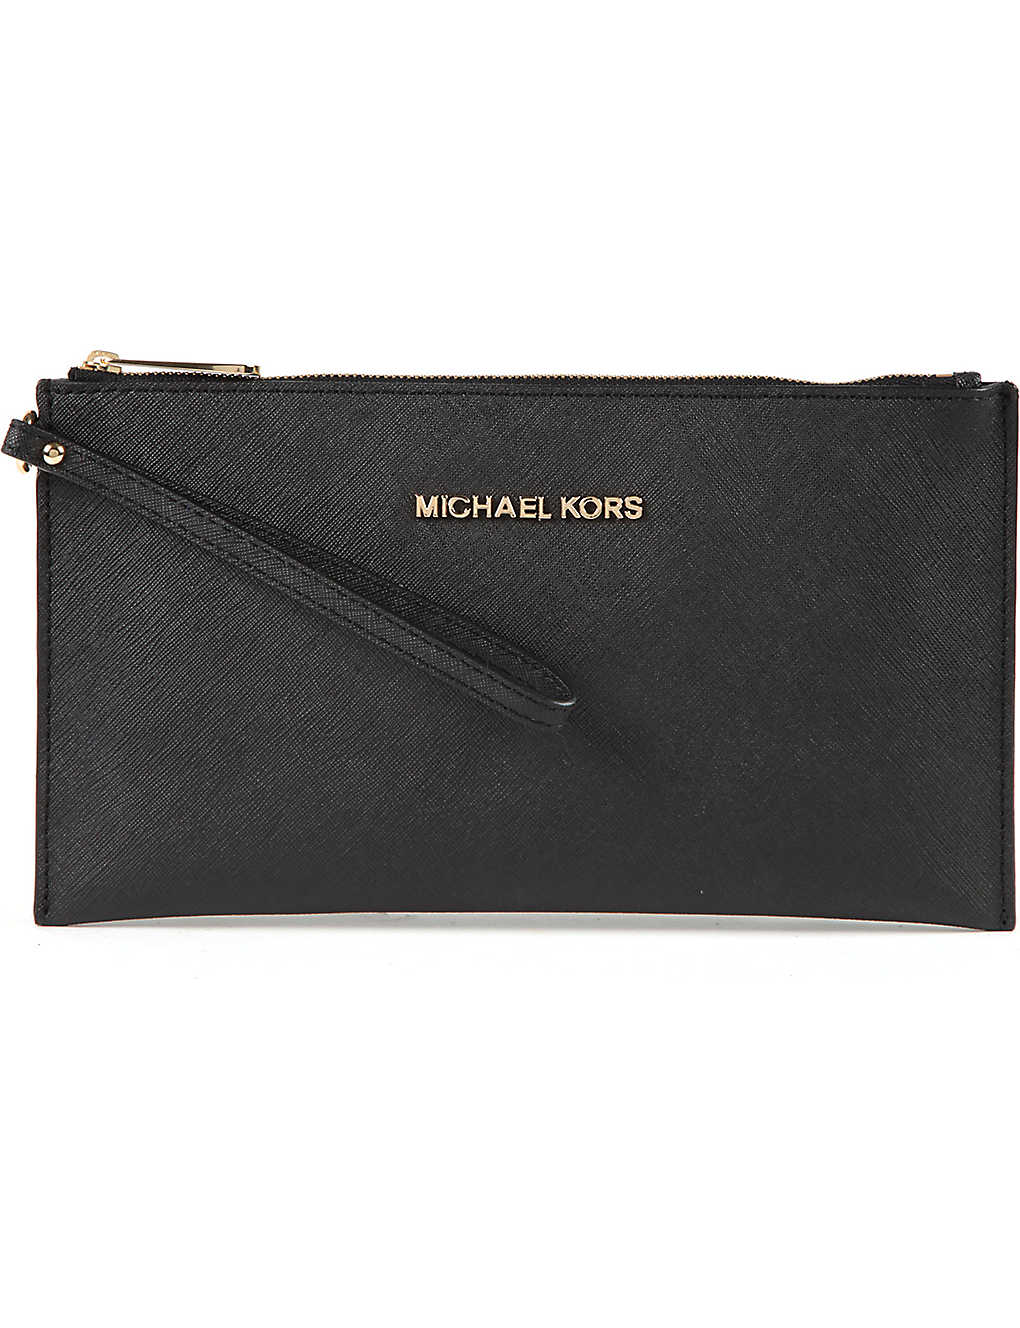 1fa25e1409a MICHAEL MICHAEL KORS - Jet Set saffiano leather clutch | Selfridges.com